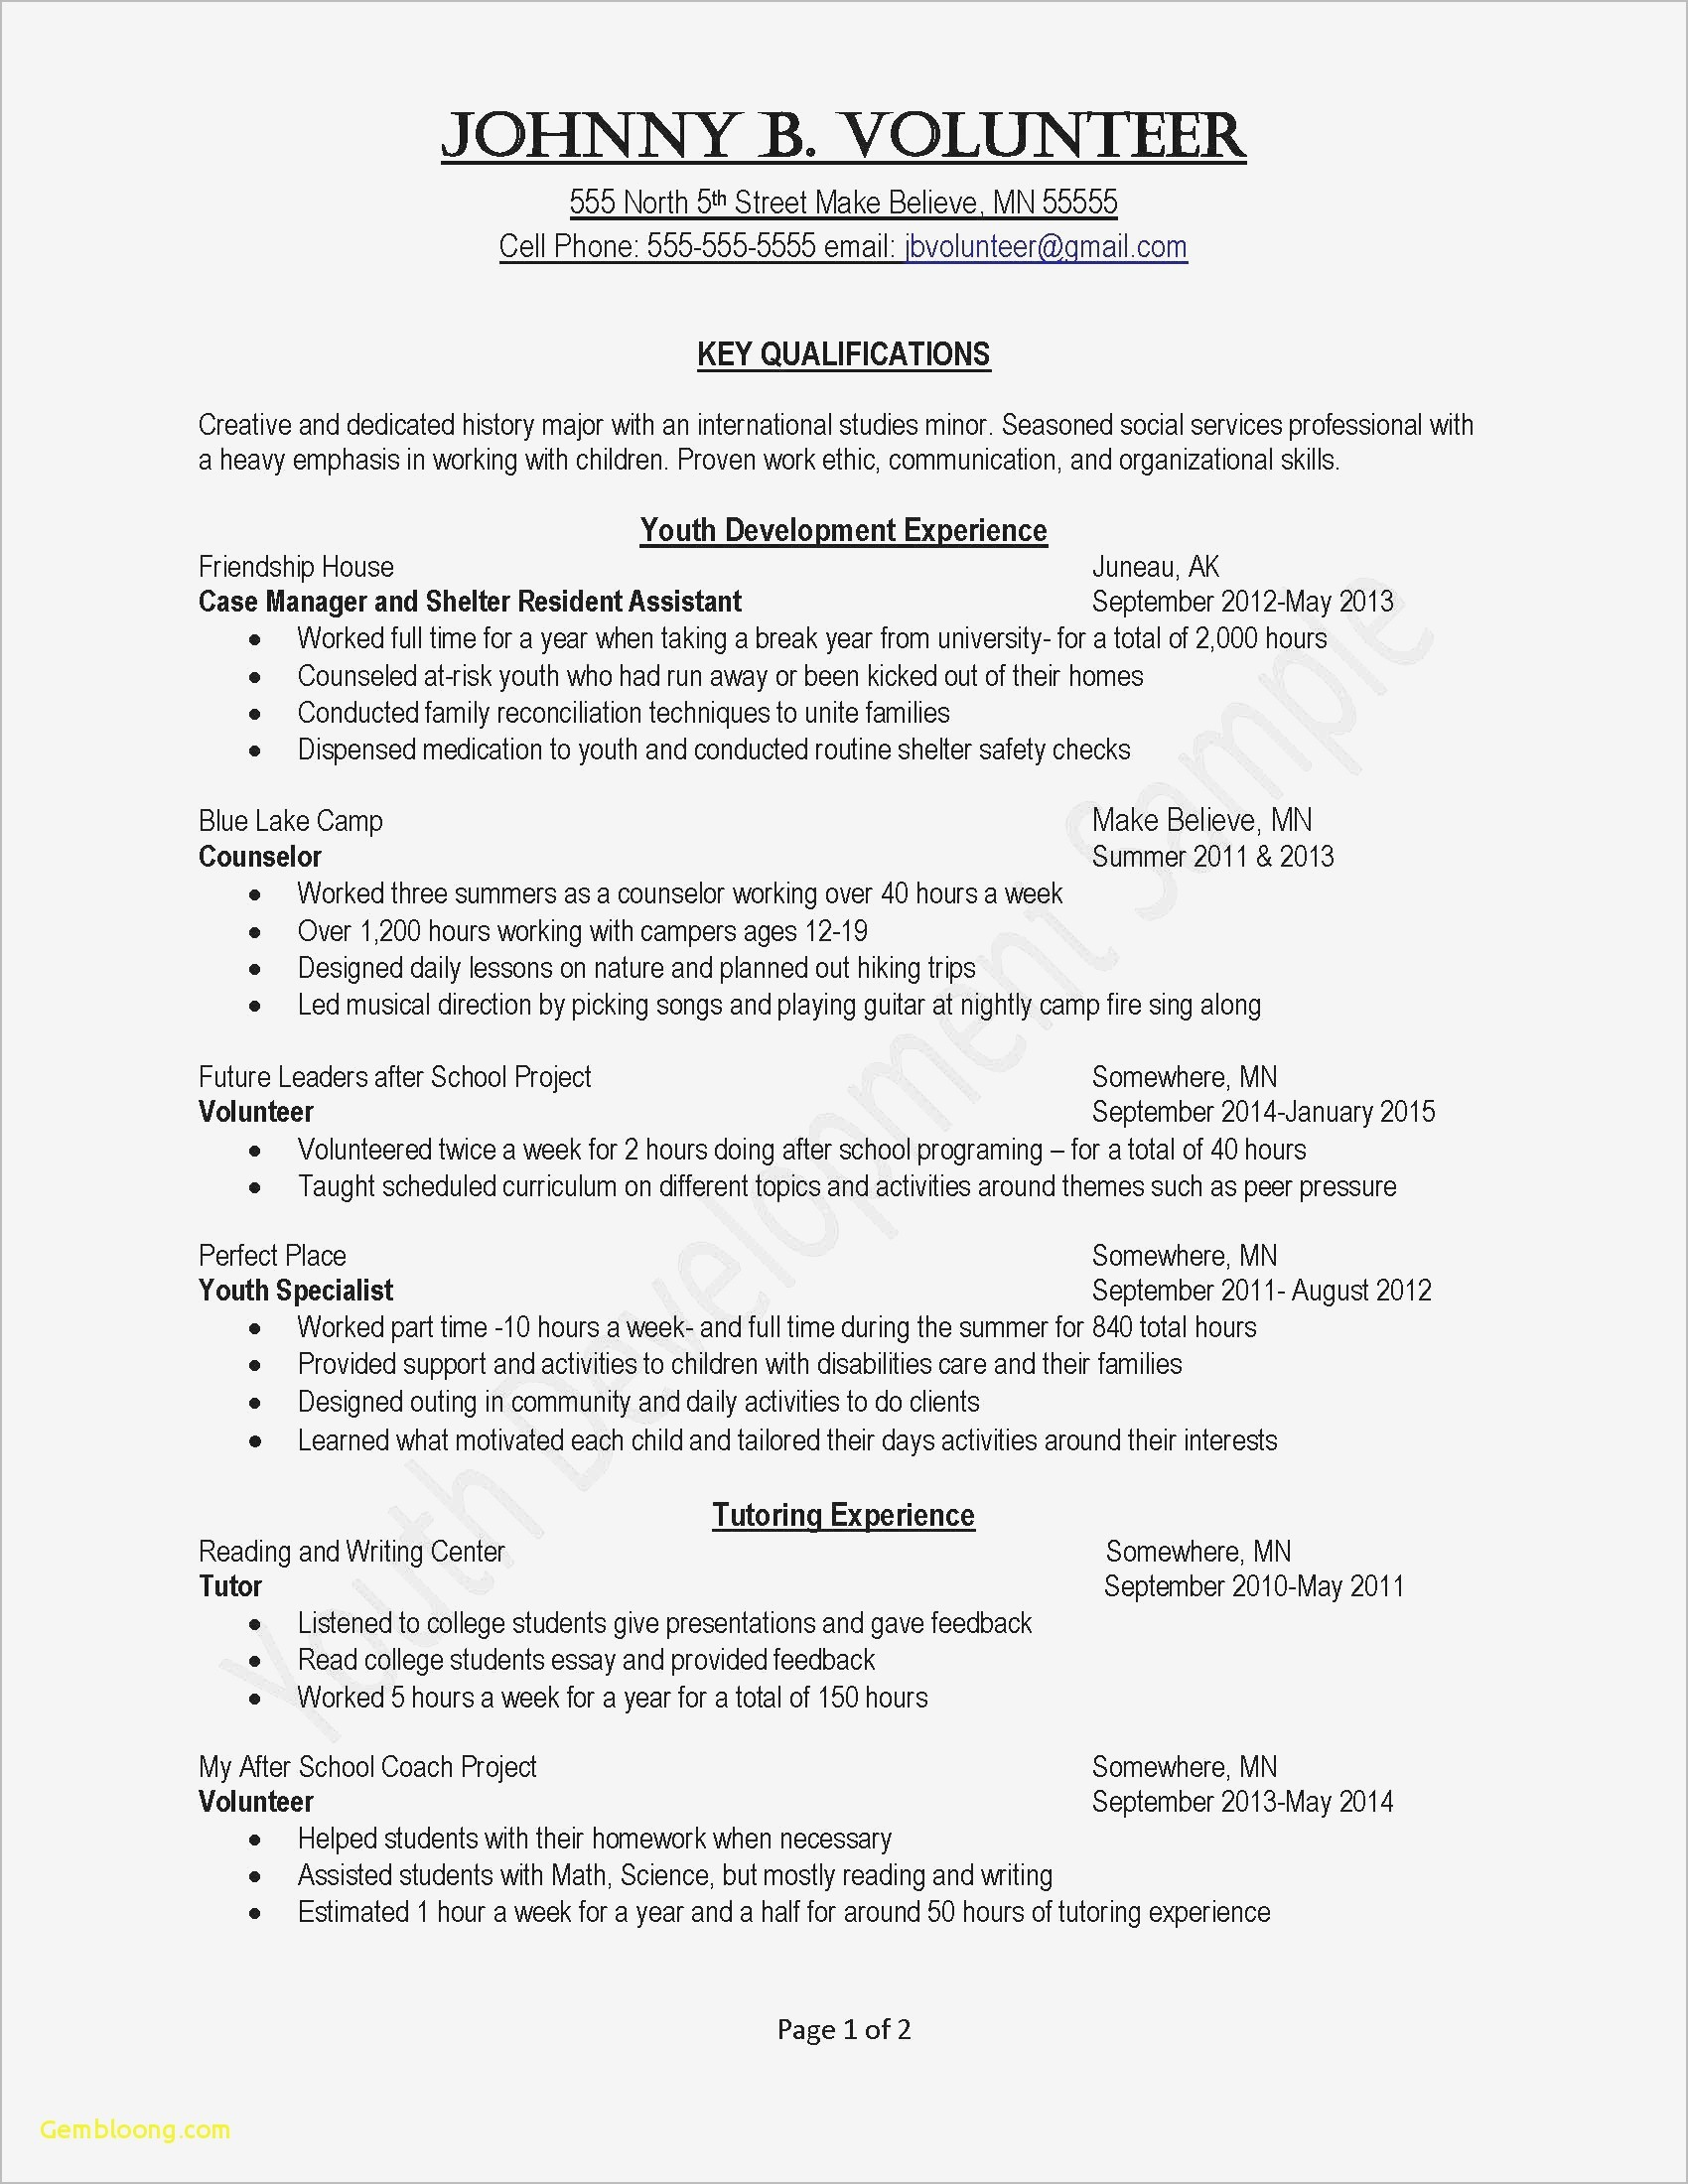 Employment Offer Letter Template - Job Fer Letter Template Us Copy Od Consultant Cover Letter Fungram